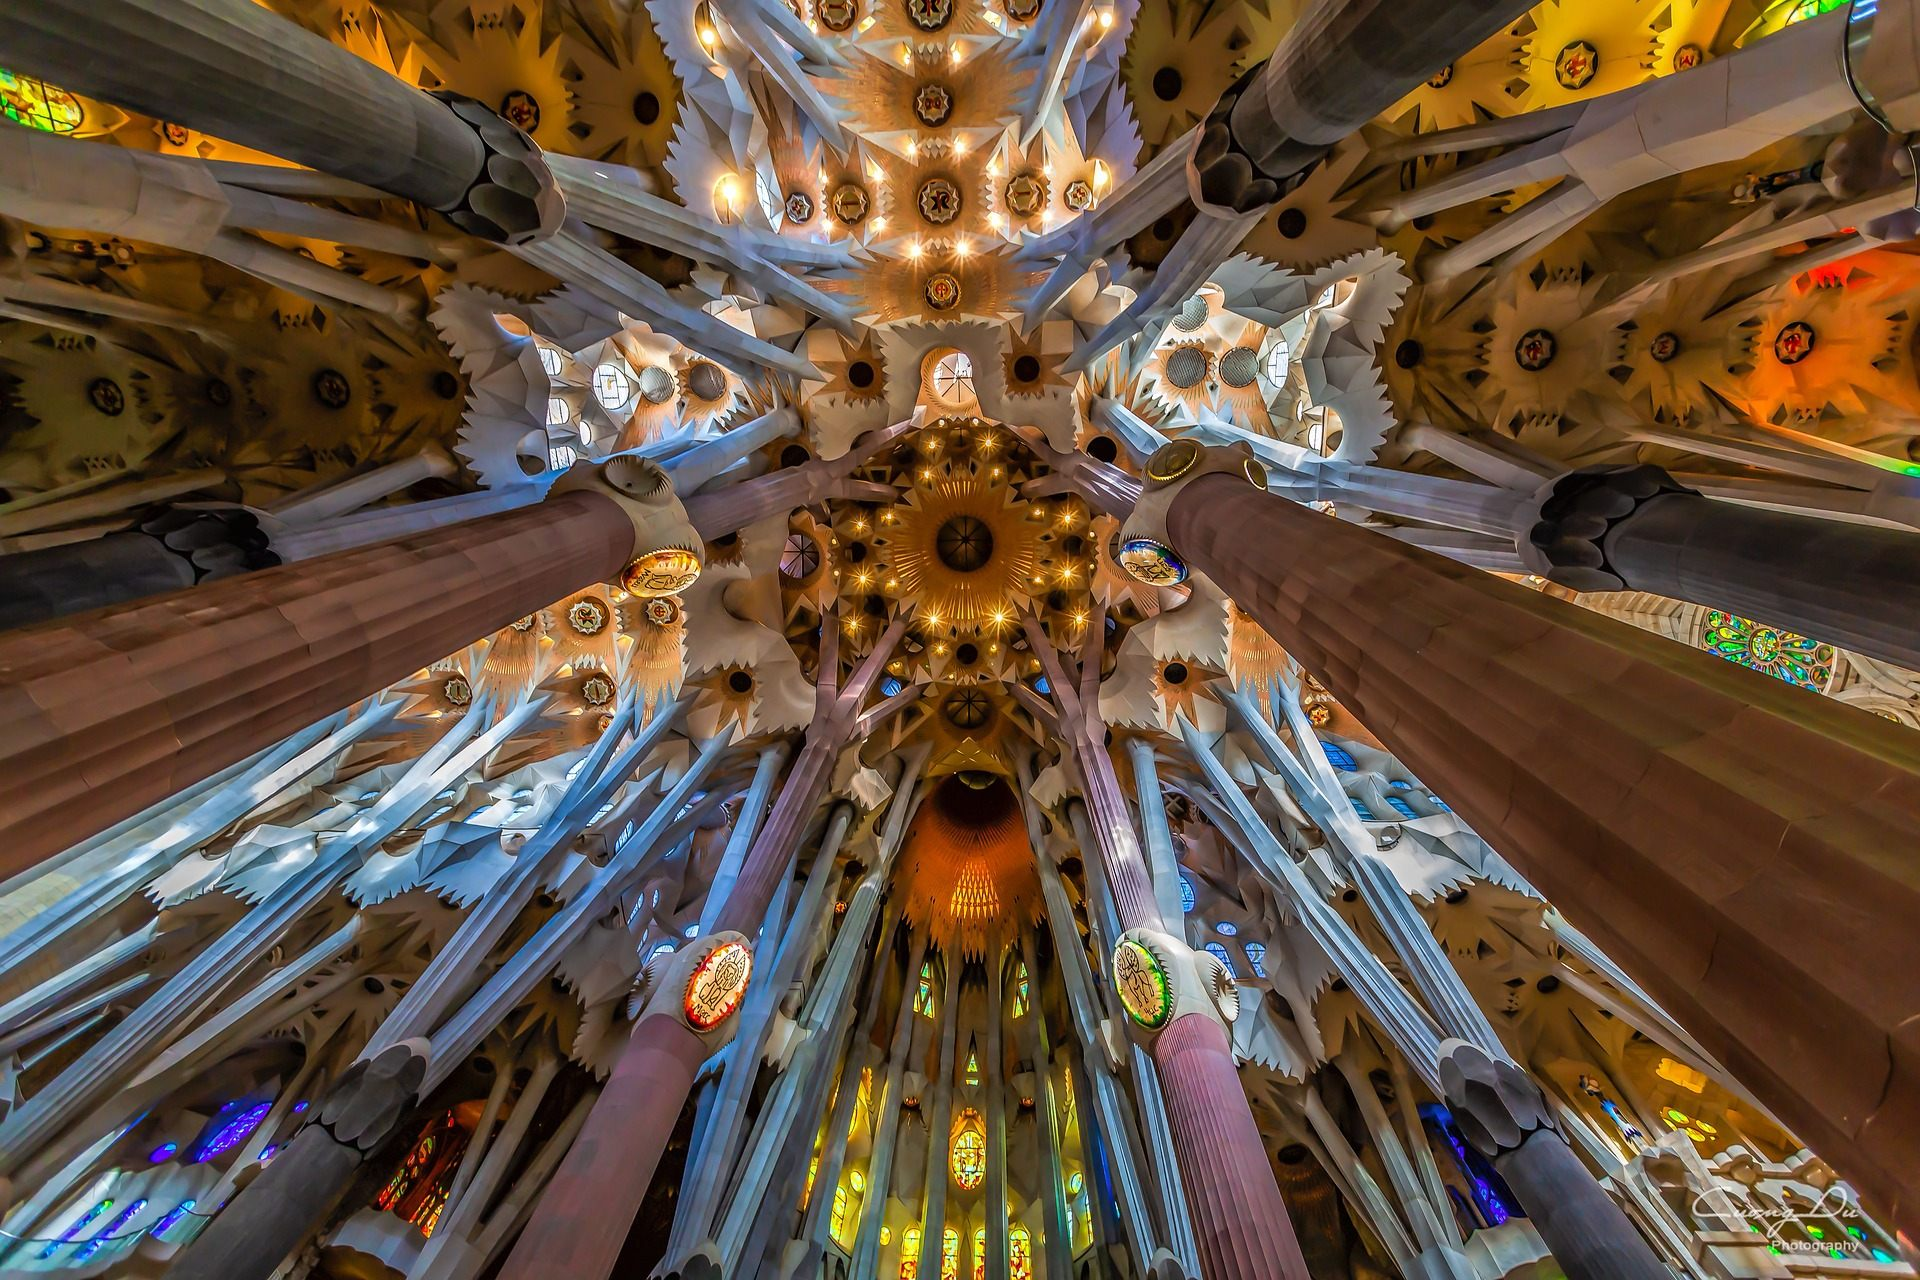 Best Of Barcelona Sagrada Familia And Old Town Full Day Tour